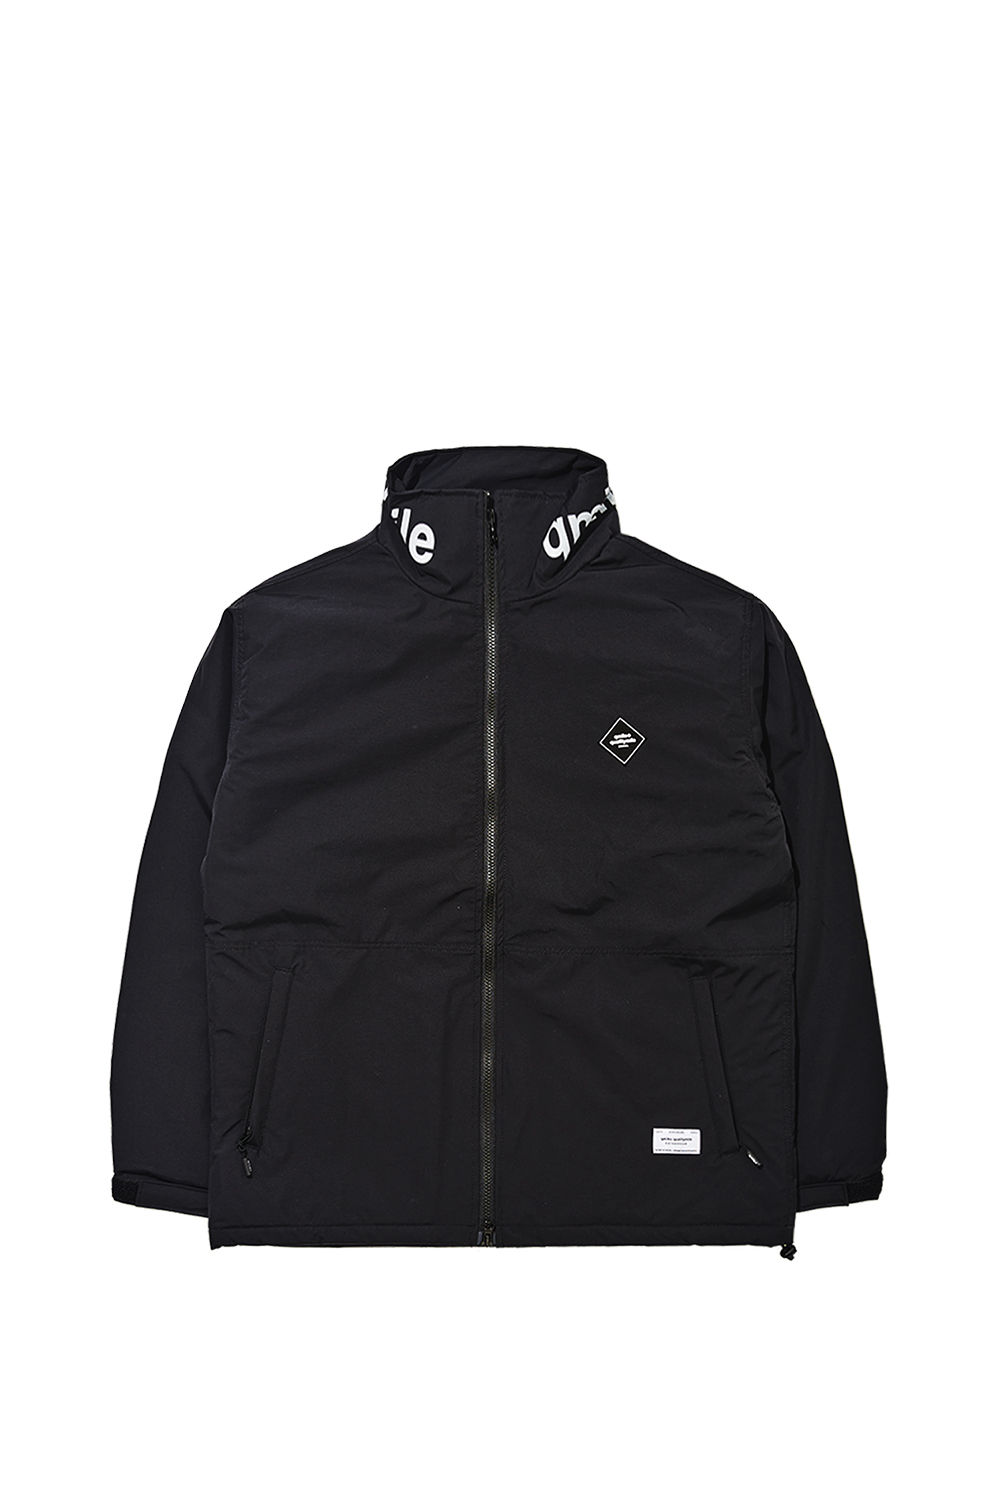 HOODLESS JACKET | BLACK